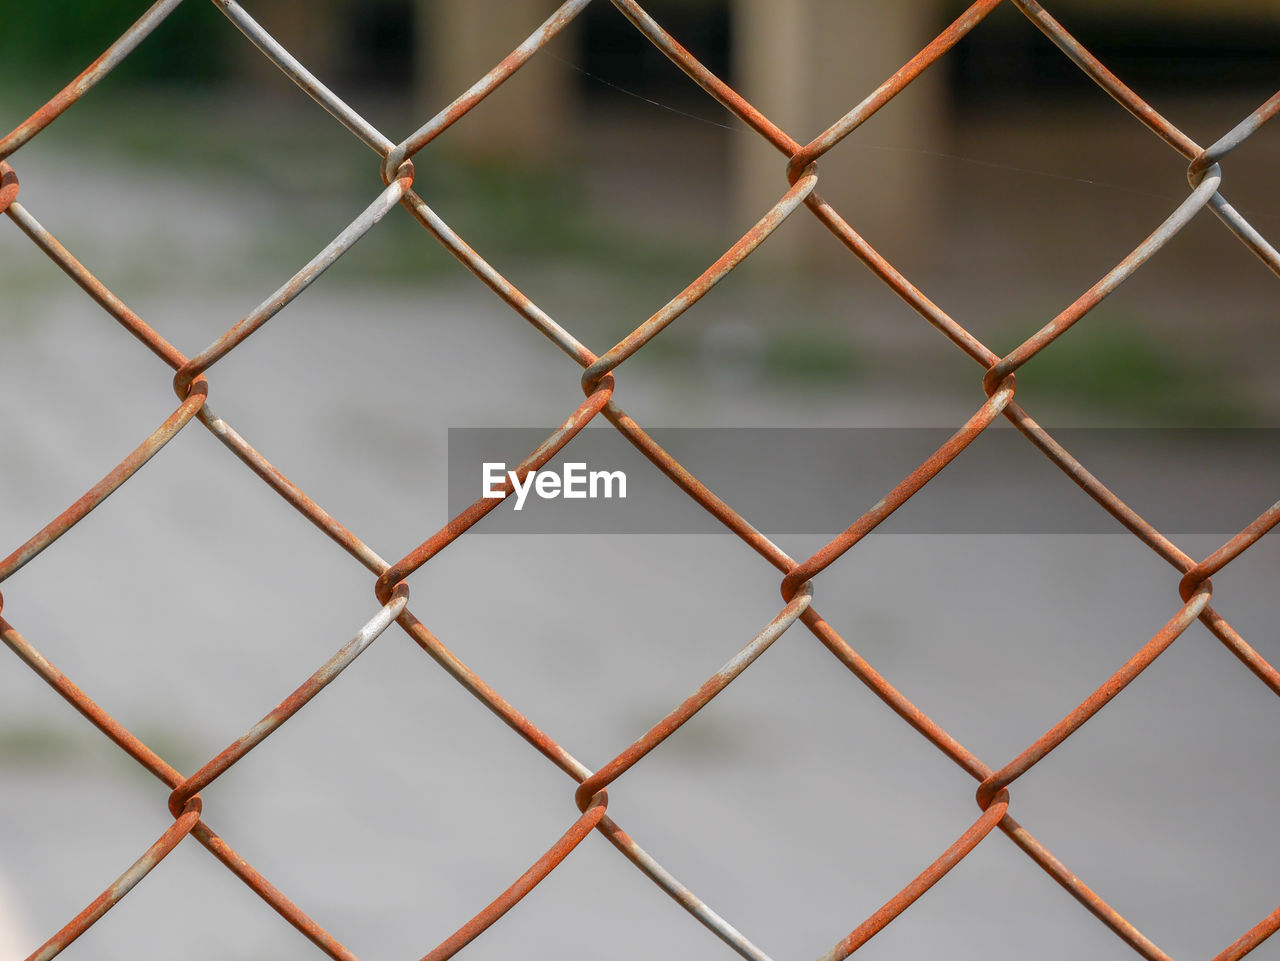 FULL FRAME SHOT OF CHAINLINK FENCE SEEN THROUGH METAL WIRE